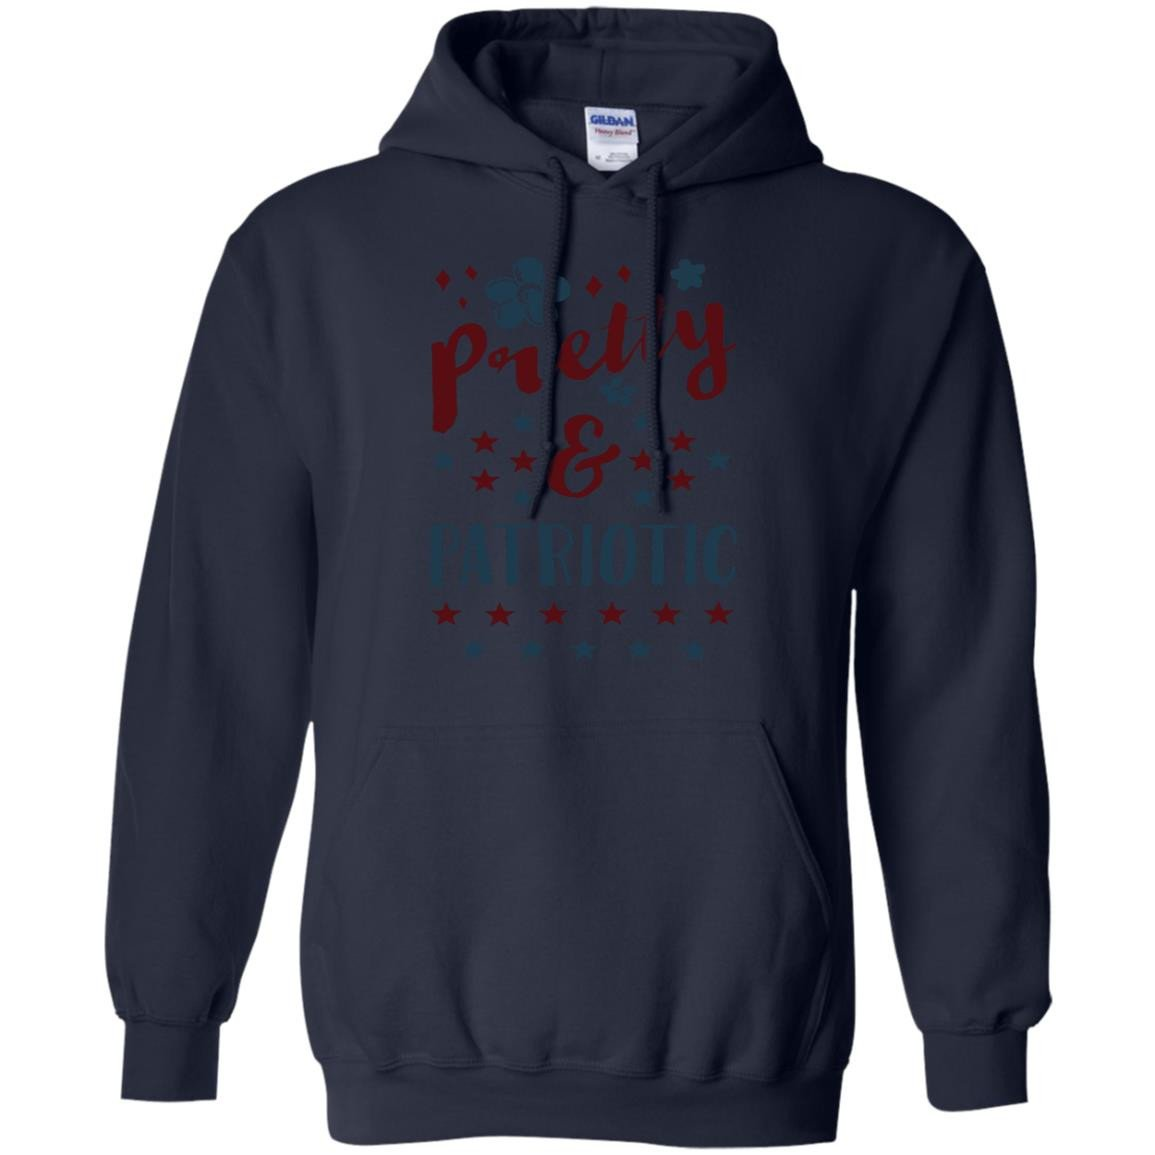 America Shirts PRETTY AND PATRIOTIC T-shirts Hoodies Sweatshirts